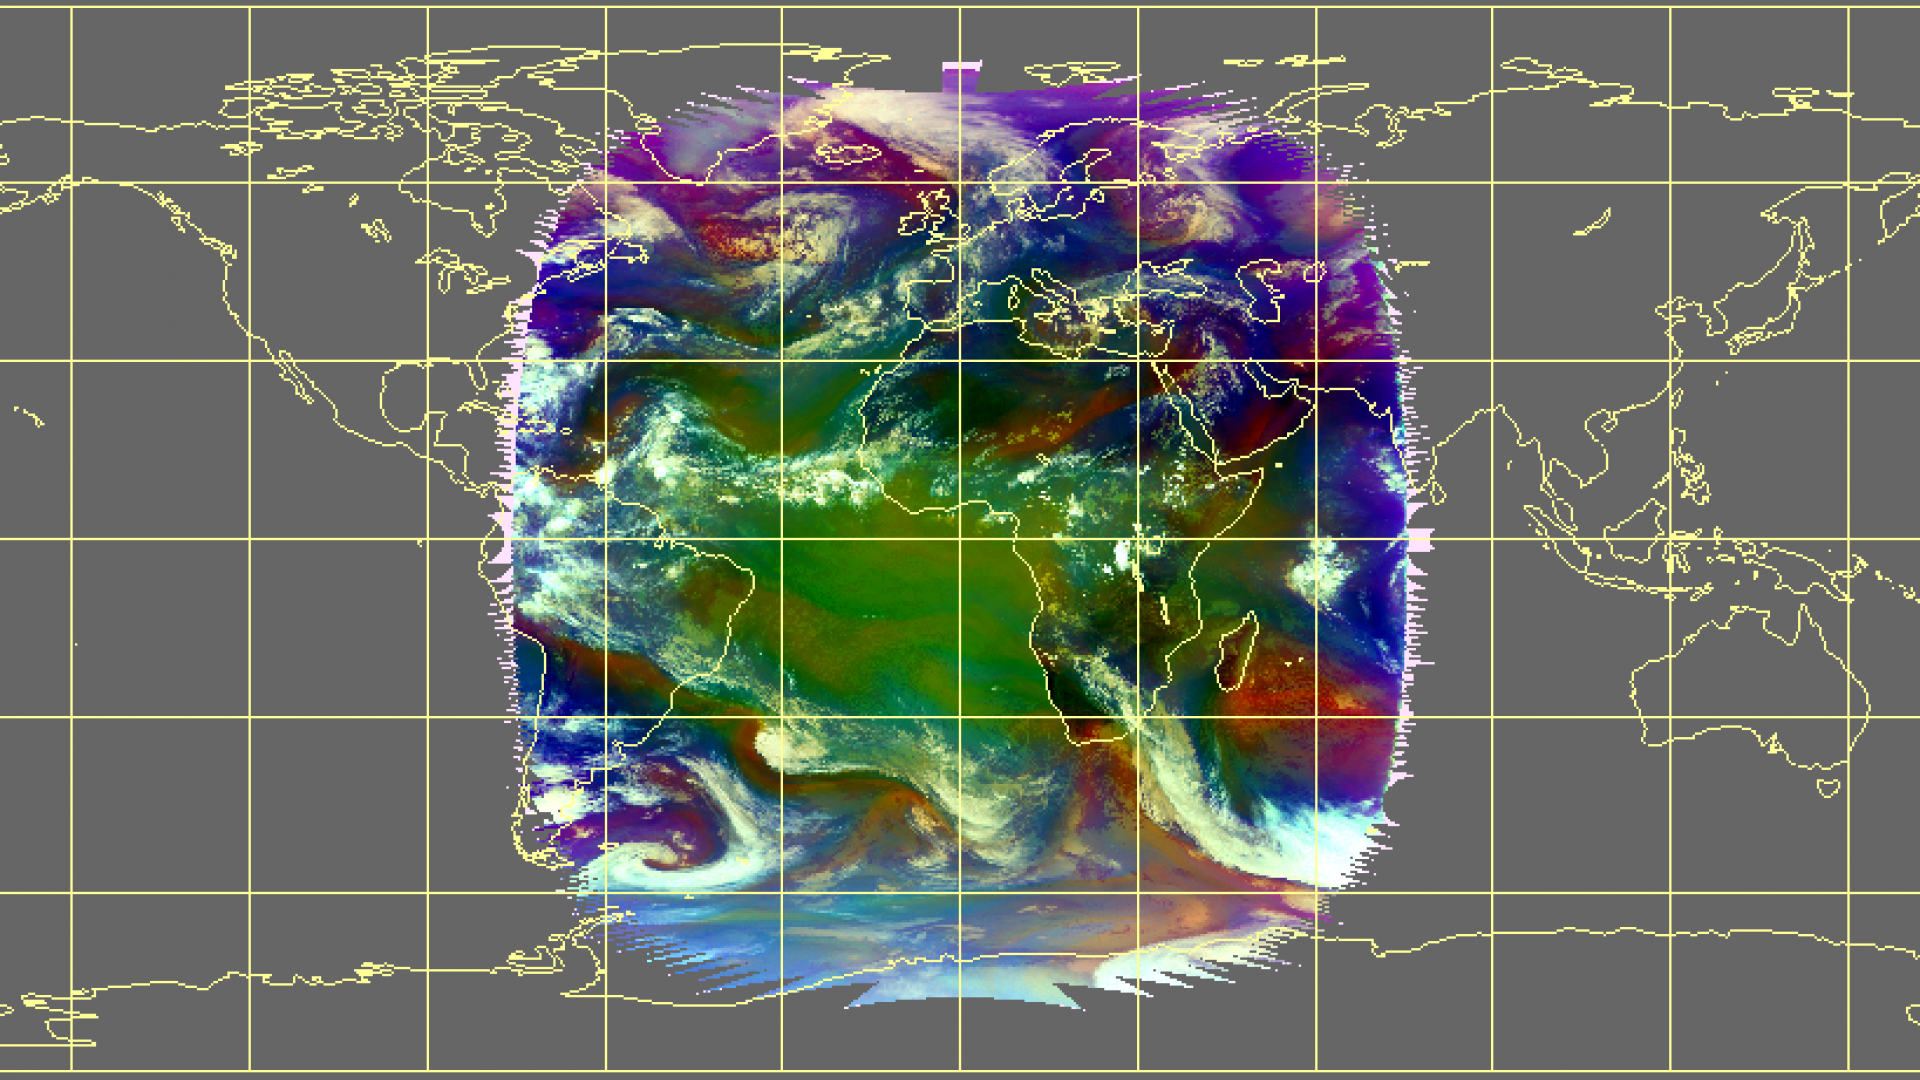 Global ozone distribution as seen in Airmass RGB